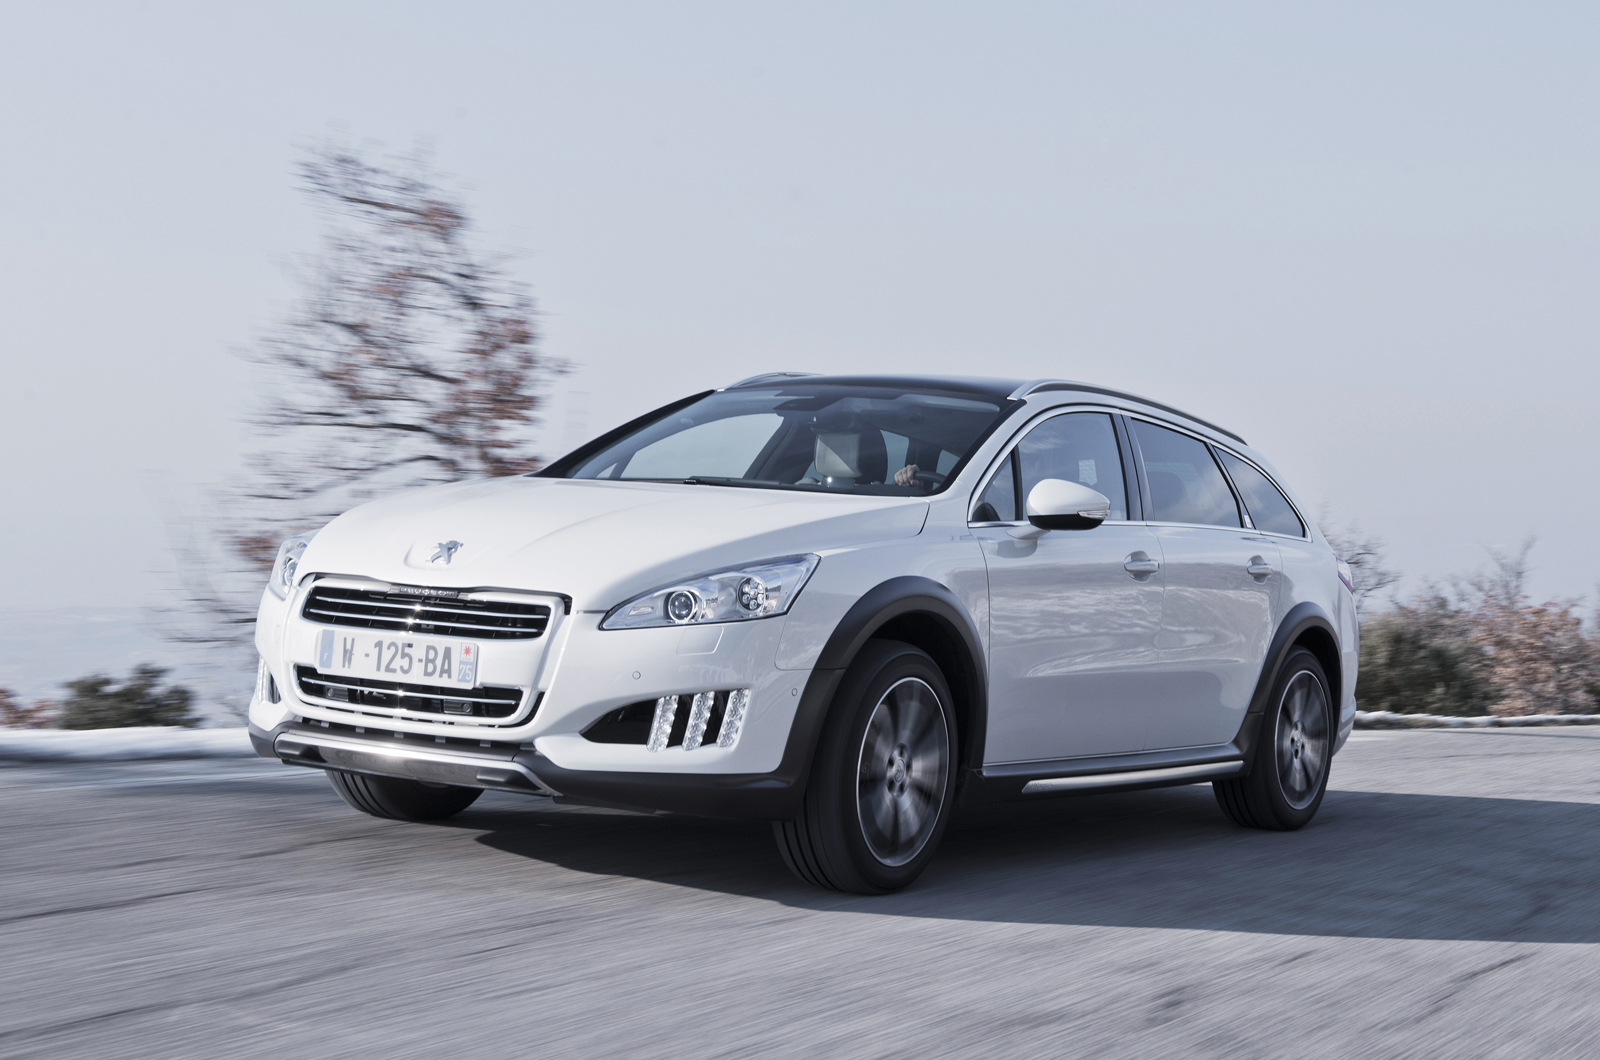 peugeot 508 rxh estate first drive. Black Bedroom Furniture Sets. Home Design Ideas